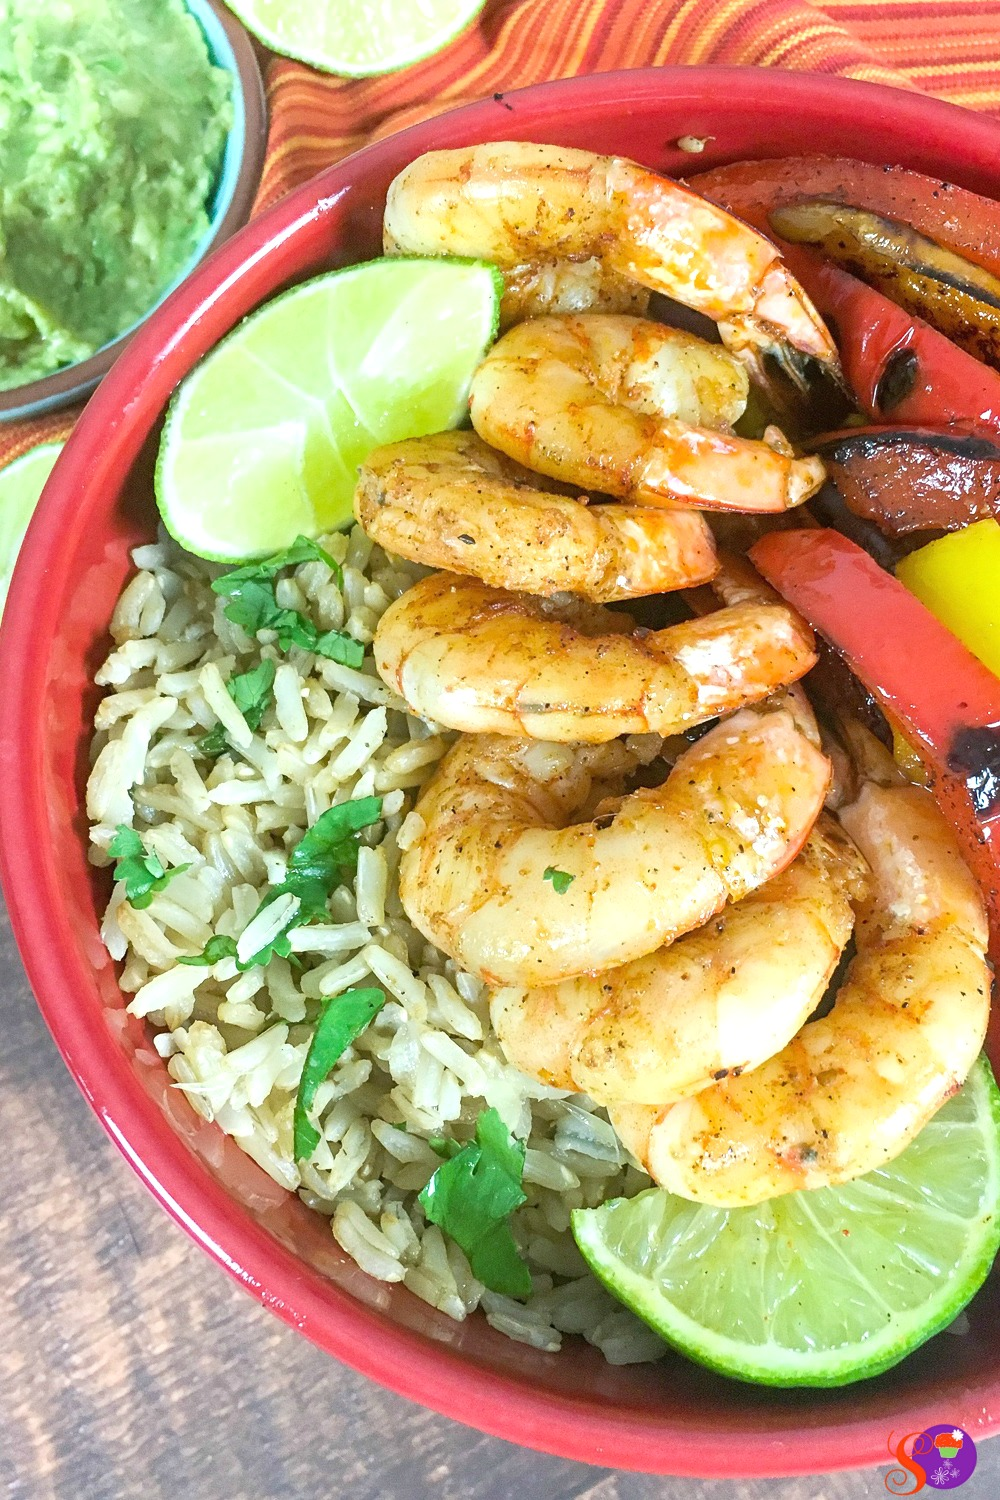 Preparing these Shrimp Fajita Bowls with Cilantro-Lime Rice is a breeze! There are no fancy steps, and everything is cooked in the same skillet - which means less mess to clean!